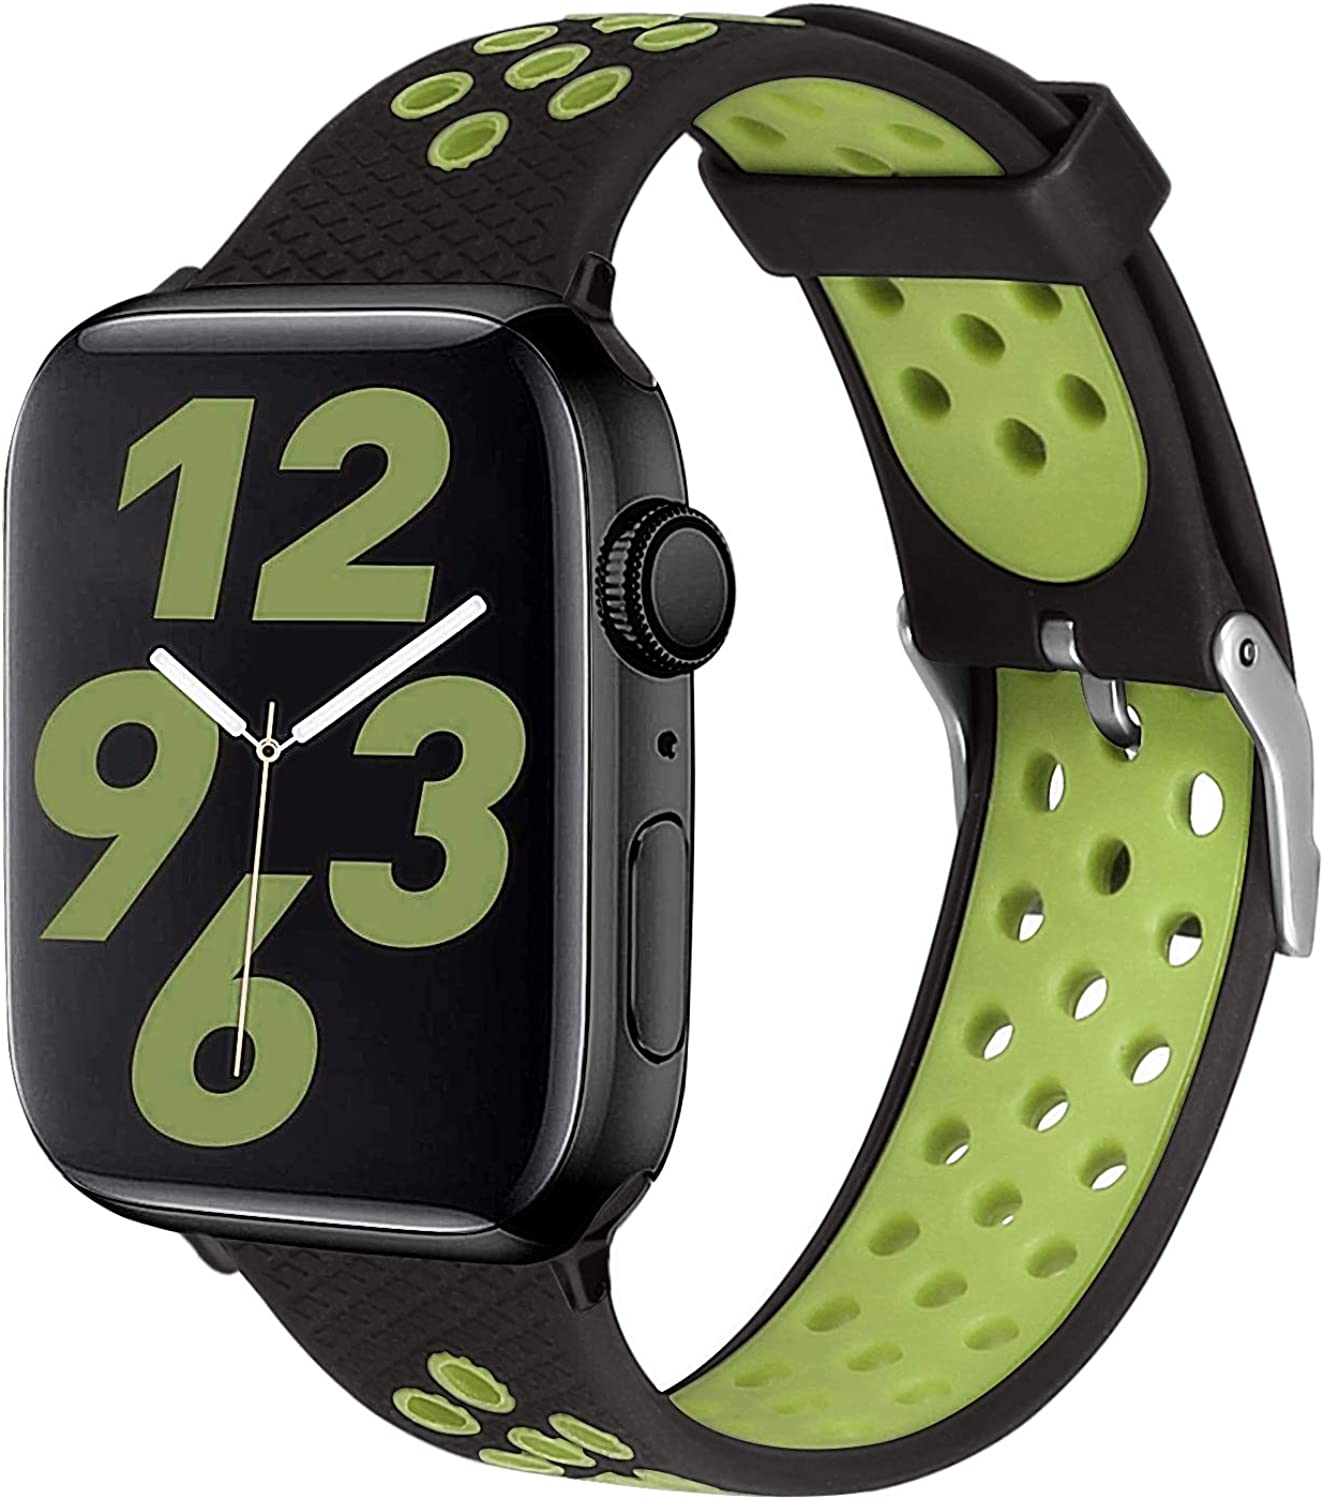 SKYLET Compatible with Apple Watch Bands Series 6 44mm 42mm Series 5 4 40mm, Sport Silicone Replacement Breathable Wristband Compatible with Apple Watch 38mm Series 3 2 1 se with Metal Clasp Men Women Black